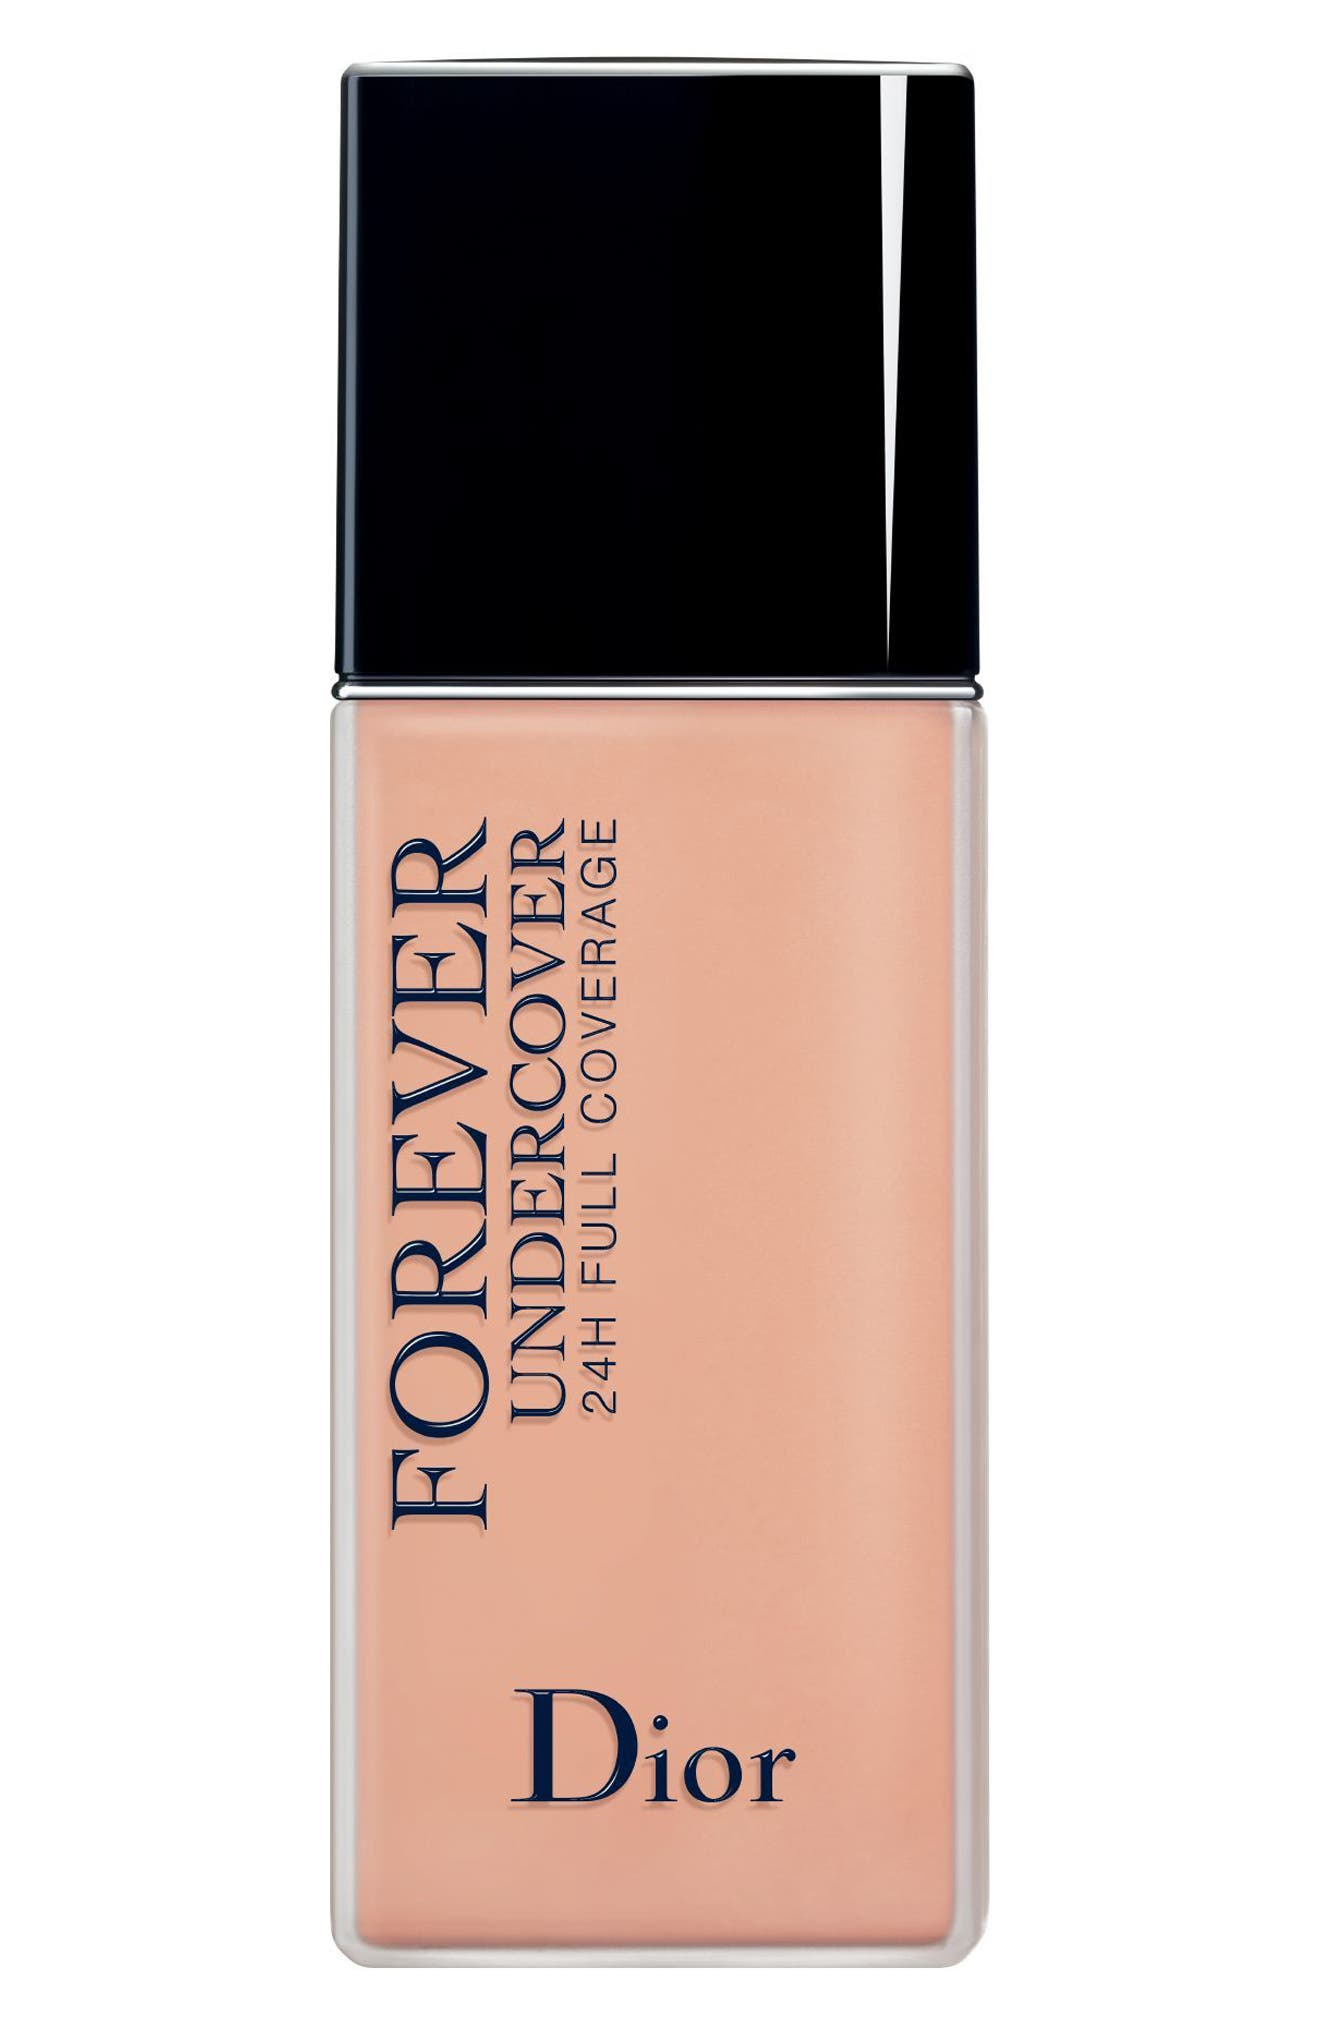 Dior Diorskin Forever Undercover 24-Hour Full Coverage Water-Based Foundation - 032 Rosy Beige